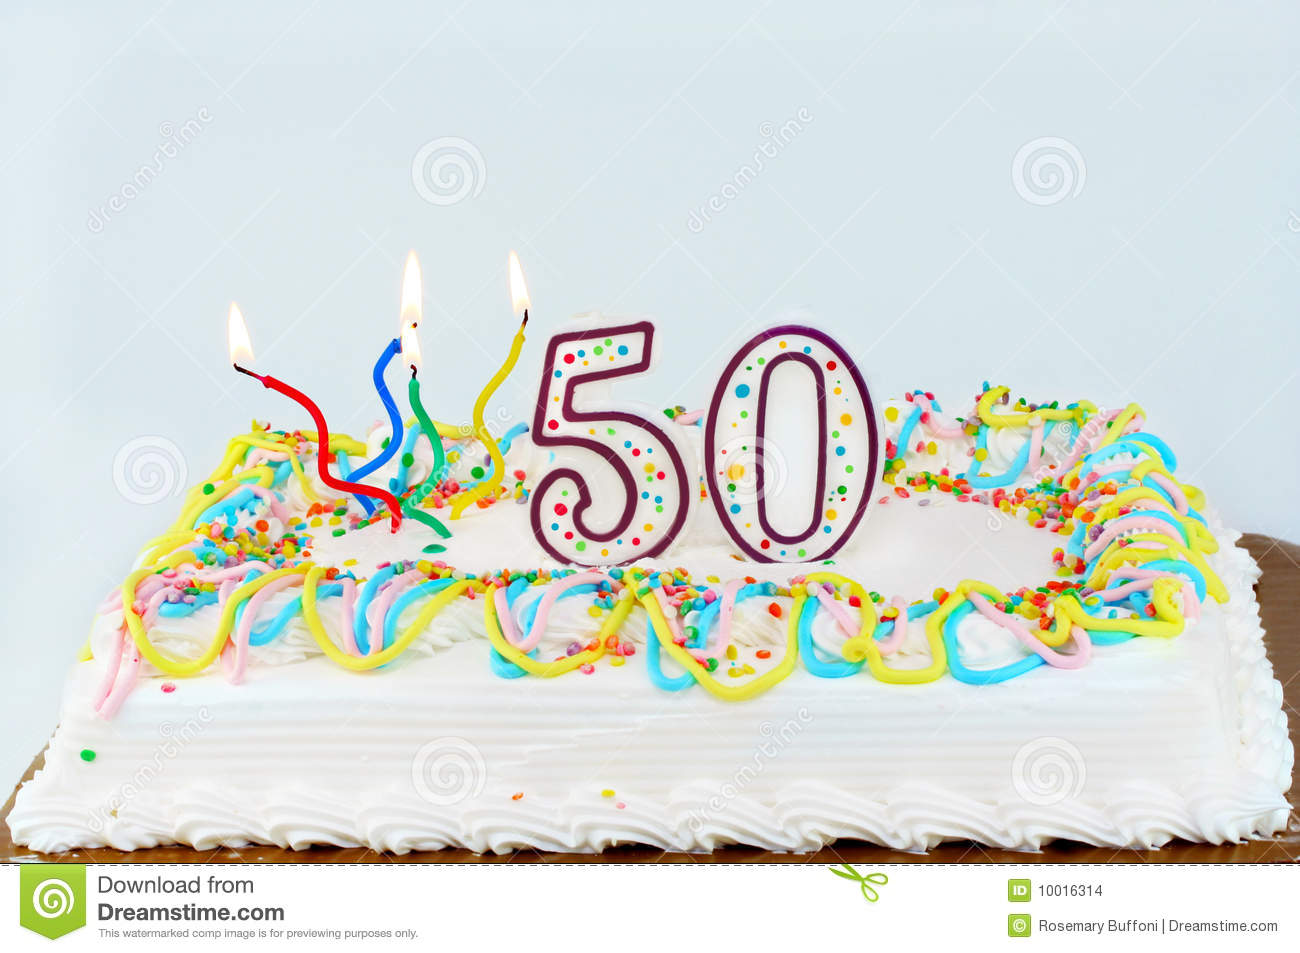 White frosted birthday cake with lit candles and the number 50 on top